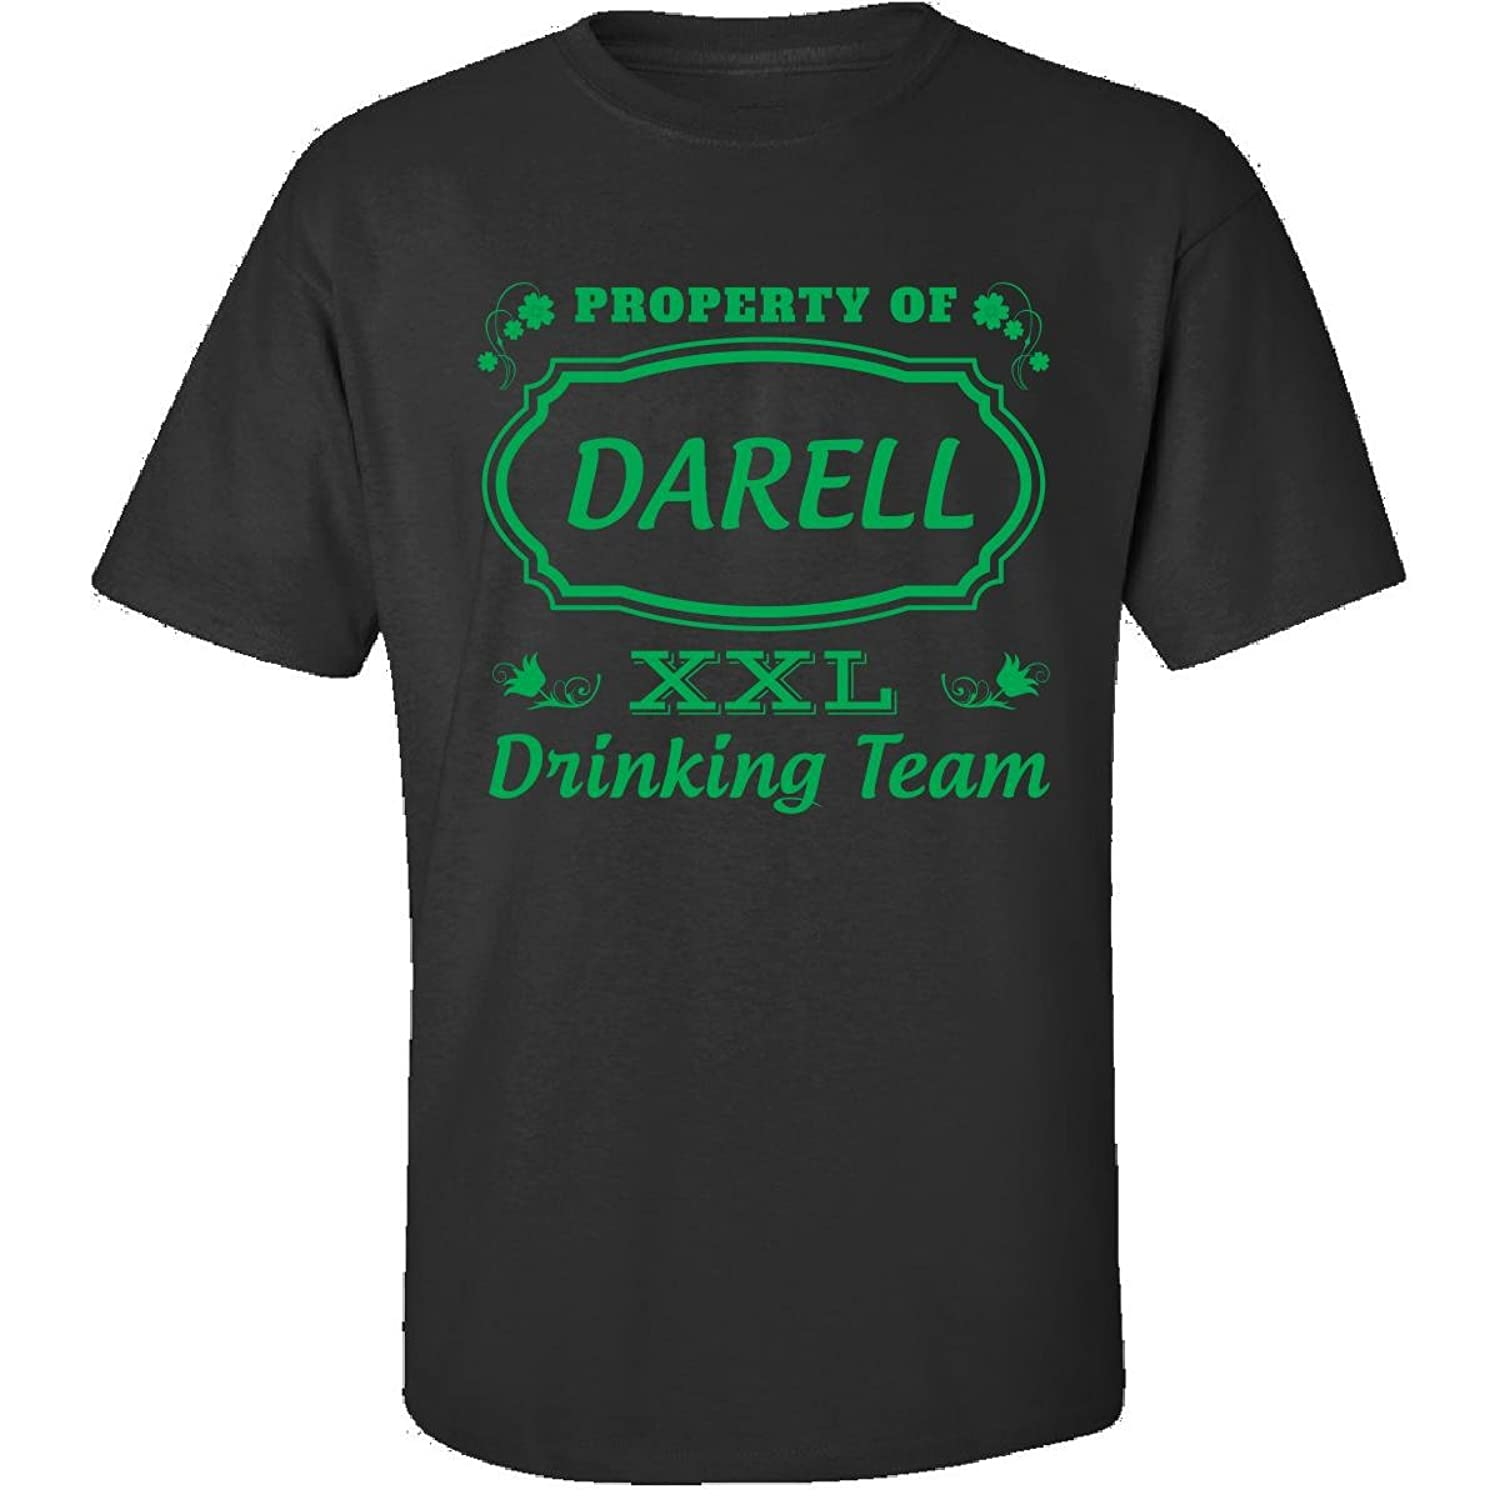 Property Of Darell St Patrick Day Beer Drinking Team - Adult Shirt